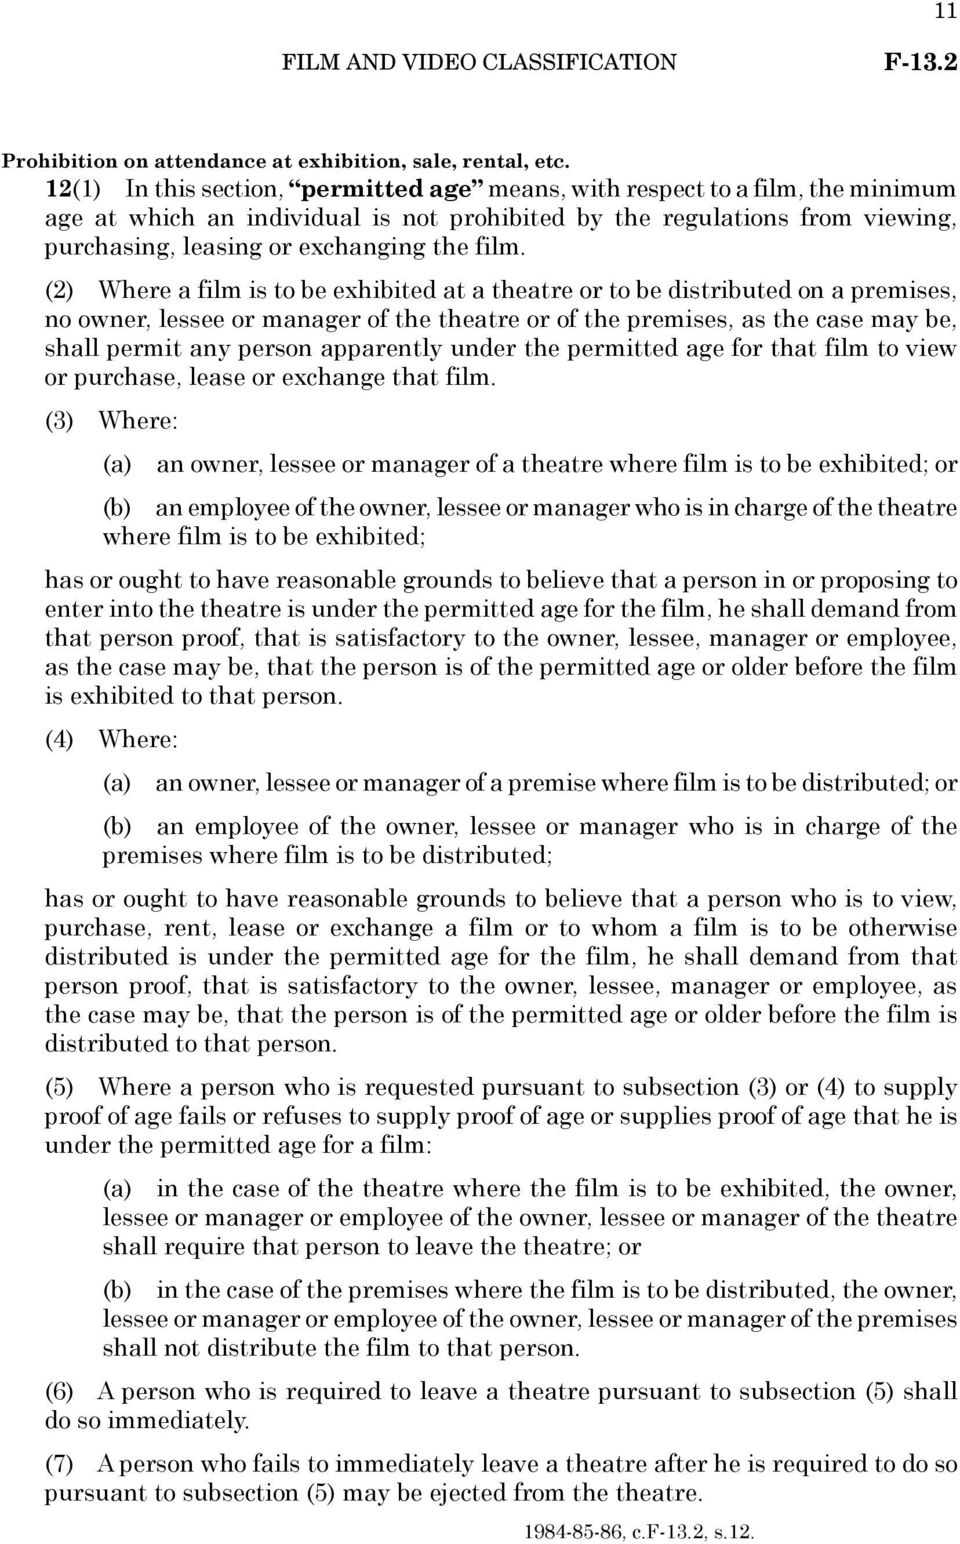 film. (2) Where a film is to be exhibited at a theatre or to be distributed on a premises, no owner, lessee or manager of the theatre or of the premises, as the case may be, shall permit any person